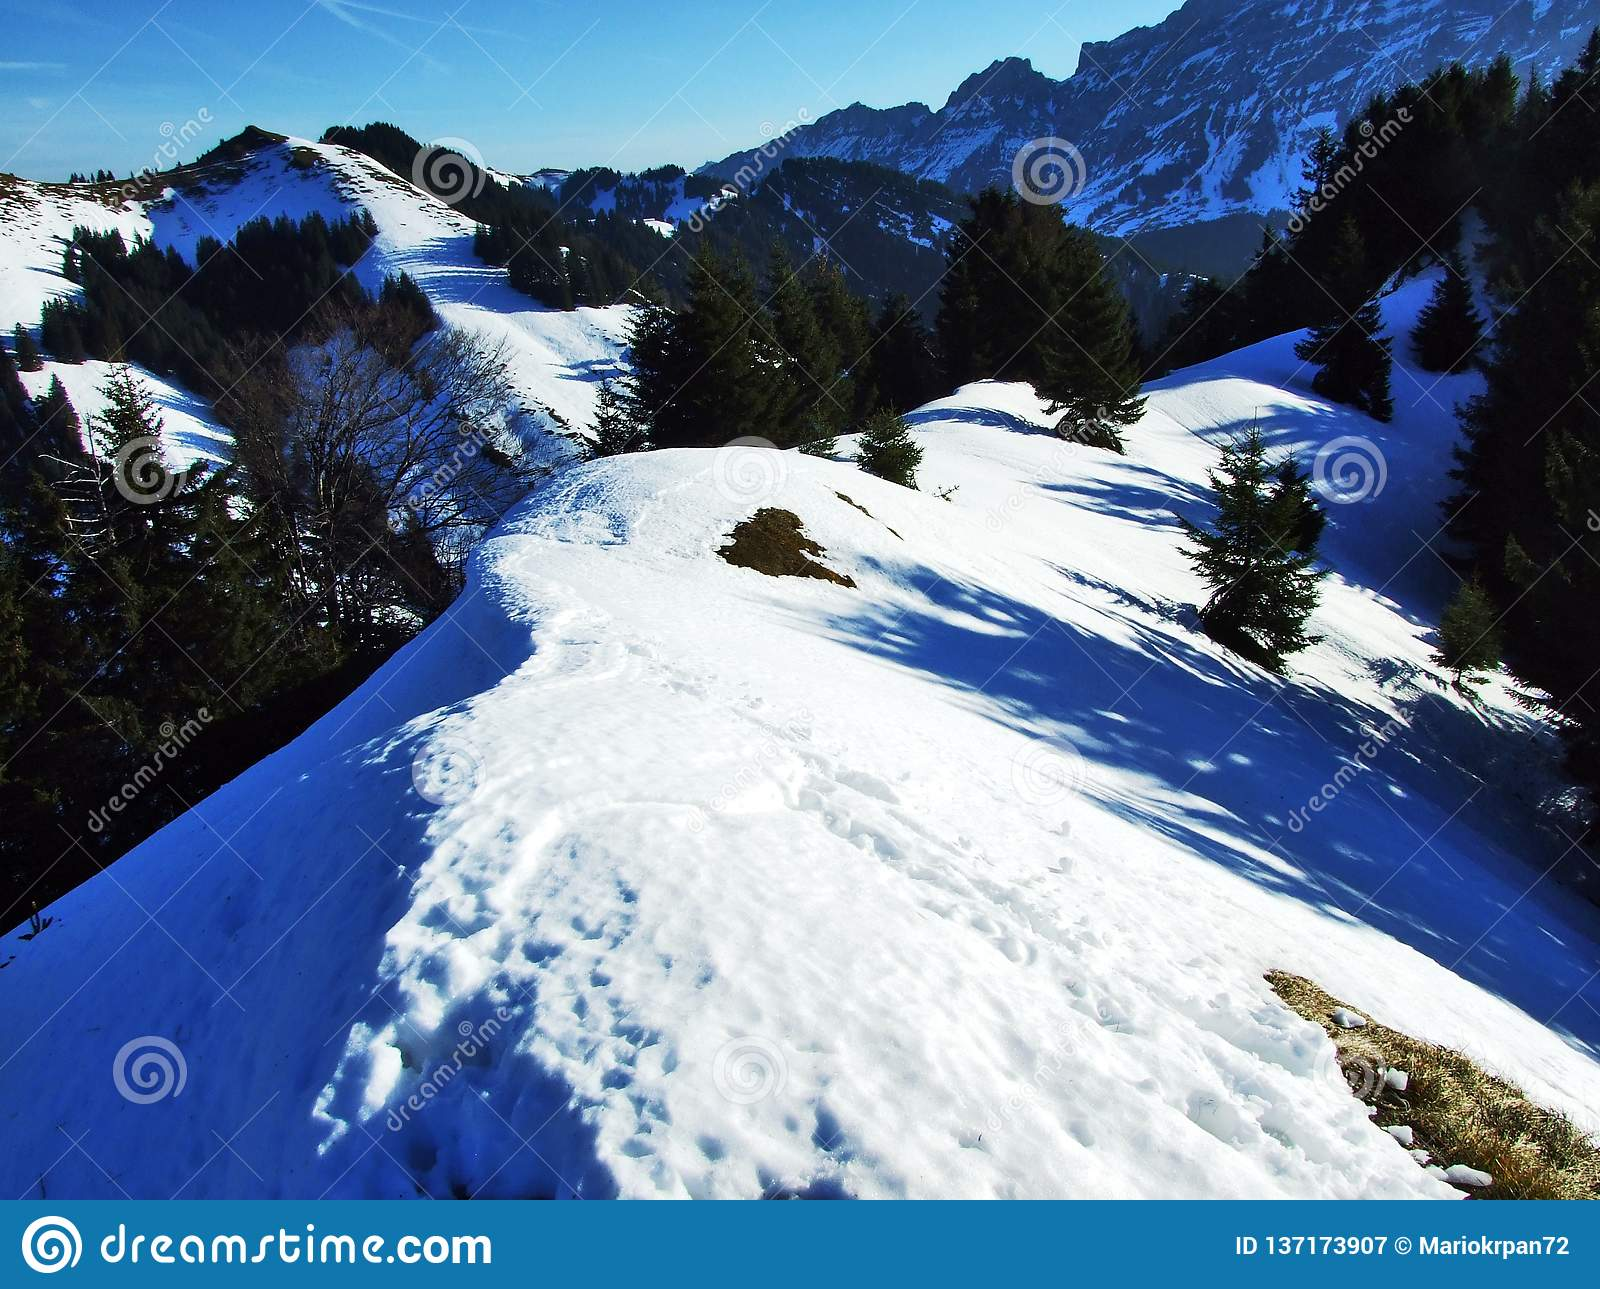 Views And Winter Ambiance At The Top Of Spitzli Near The